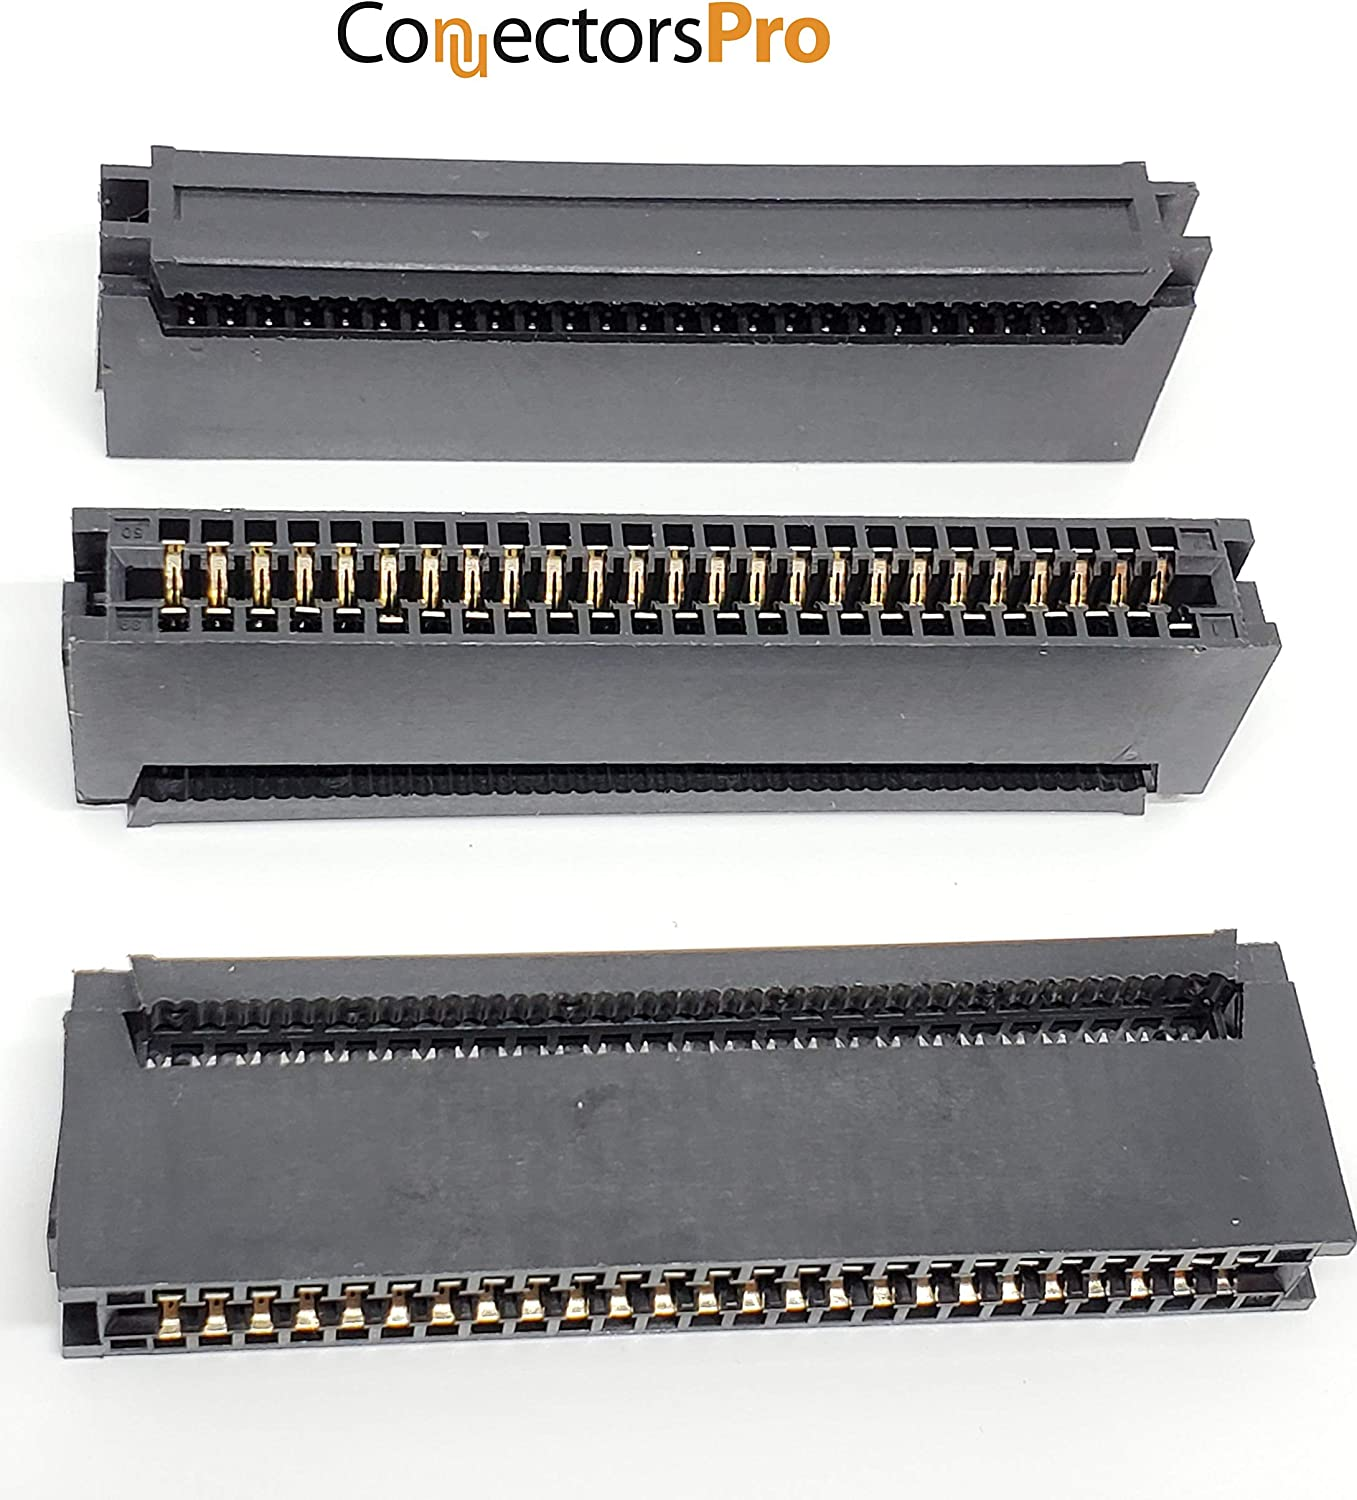 CE50 5-Pack PC Accessories 50 Pins IDC 2.54mm Card Edge Connector for 1.27mm Flat Ribbon Cable